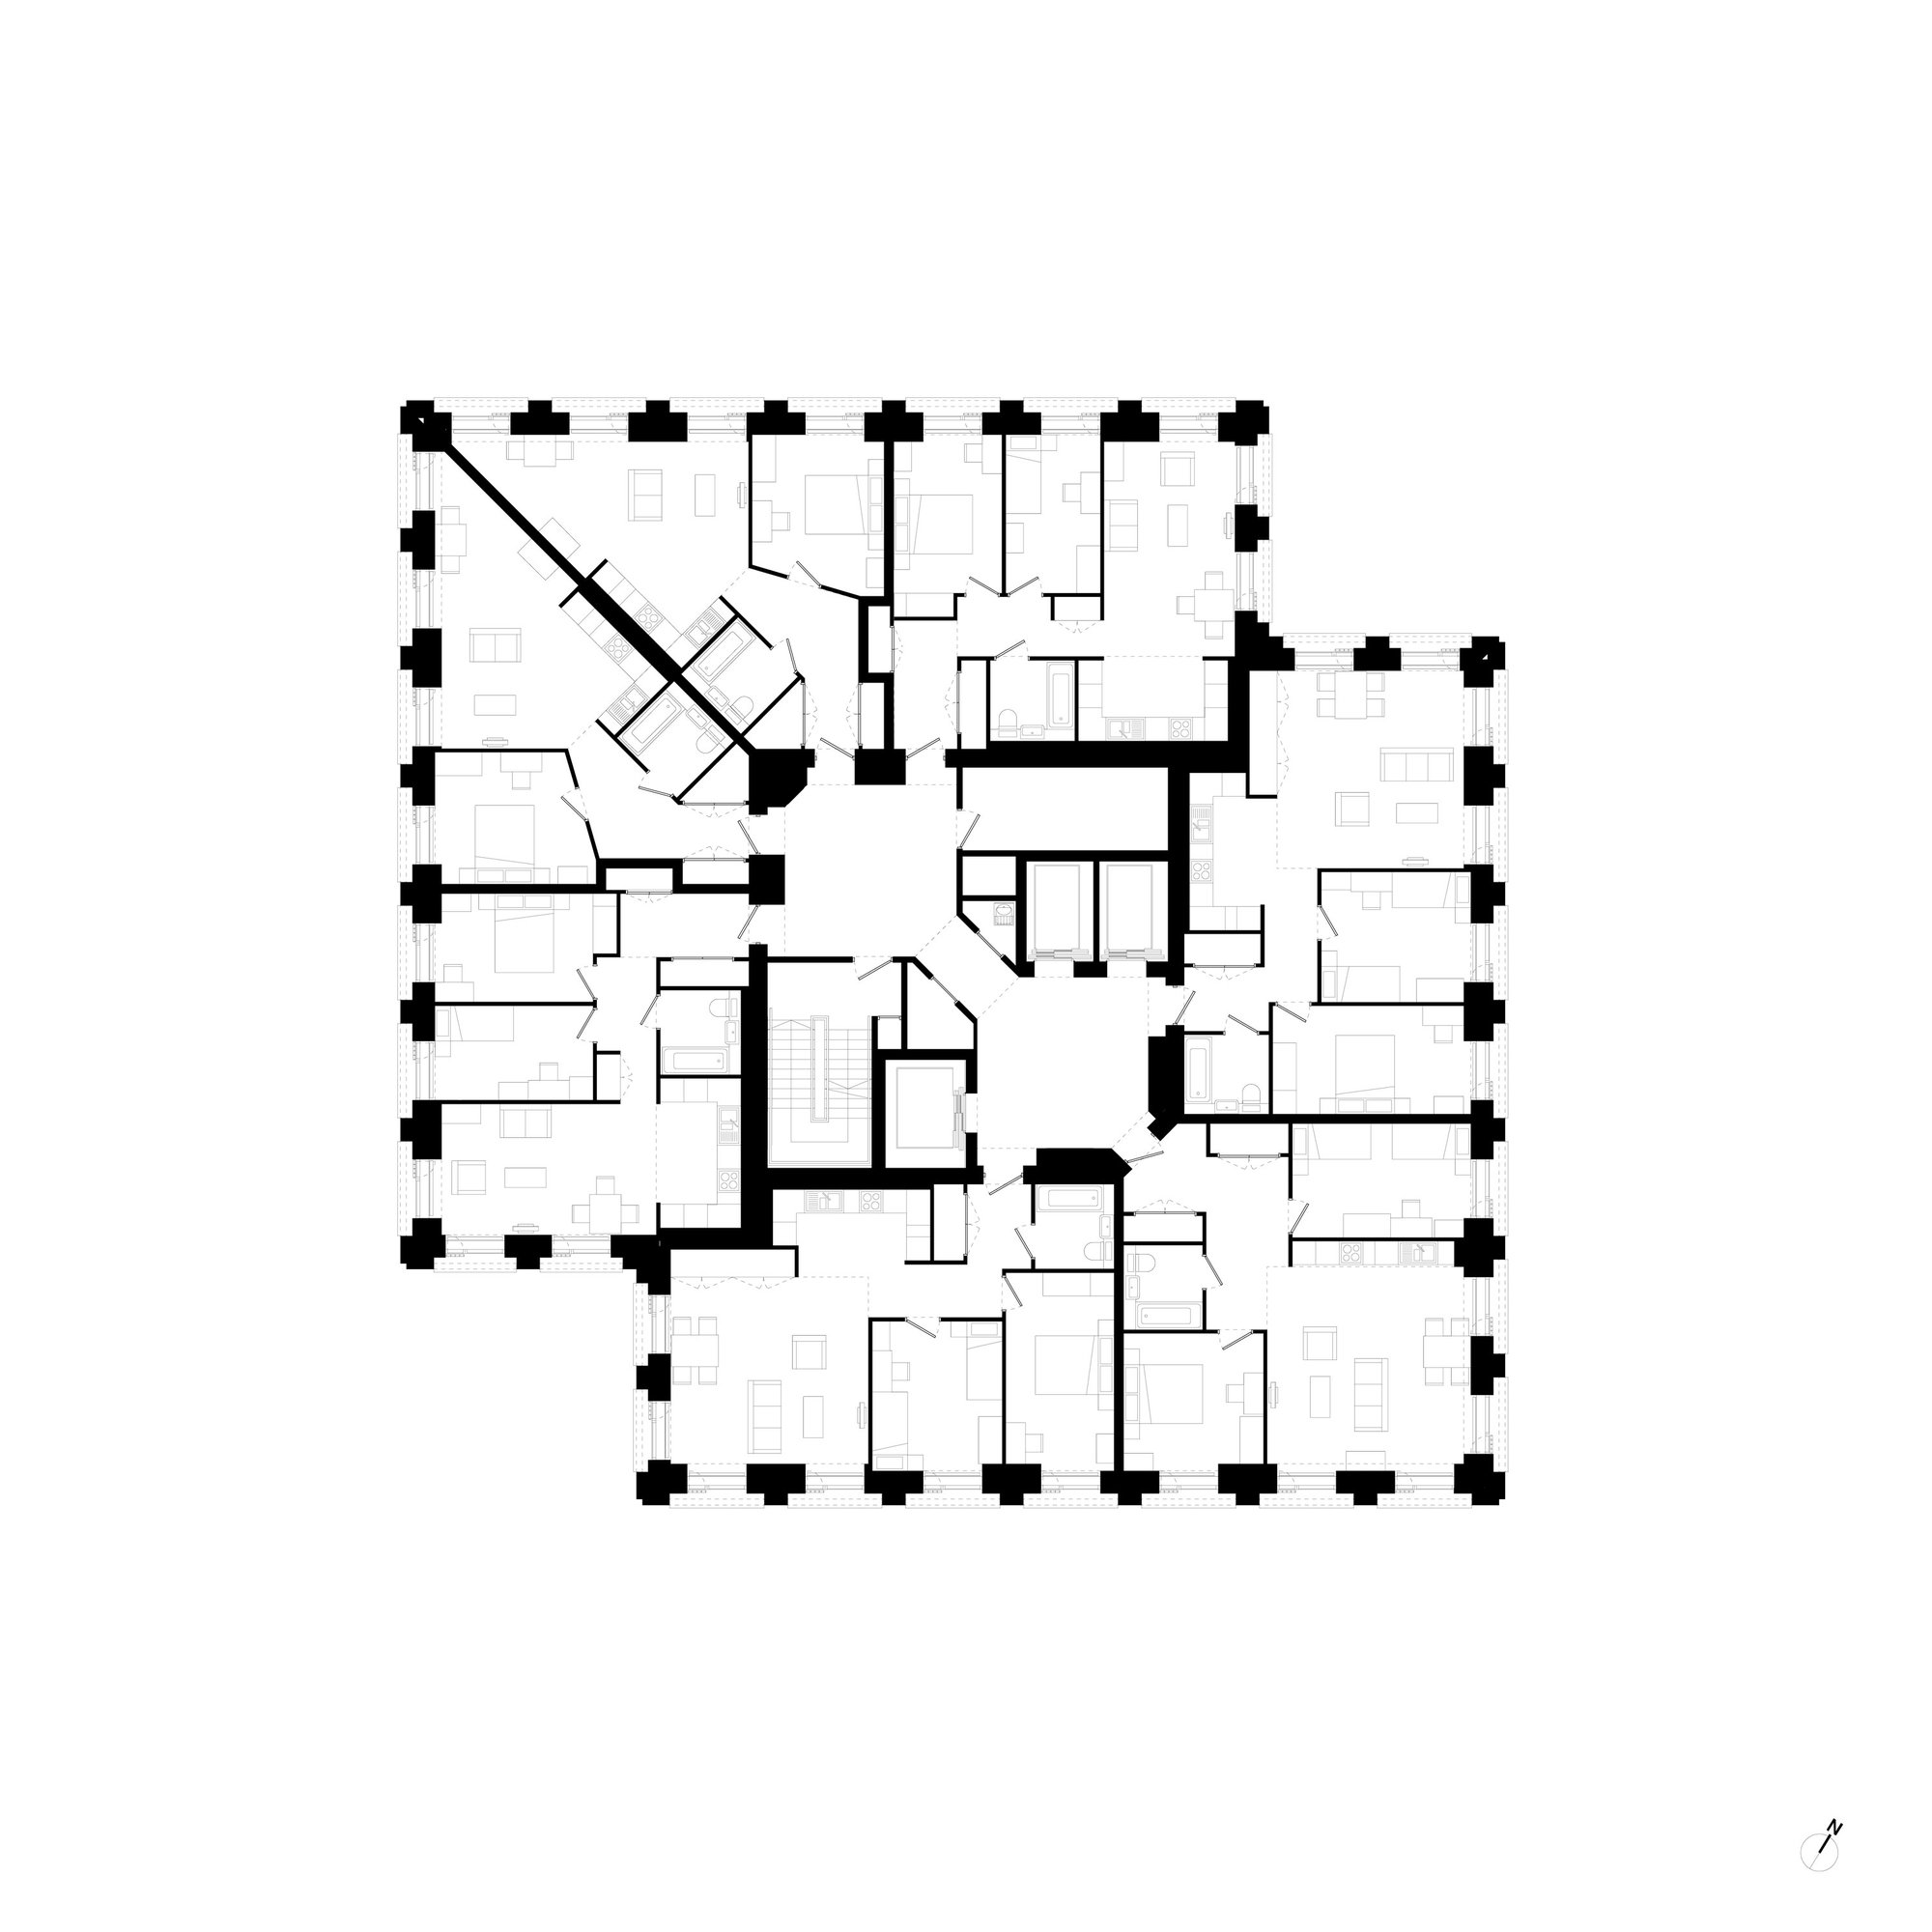 9_1307_TypicalFloorPlan_170511.jpg